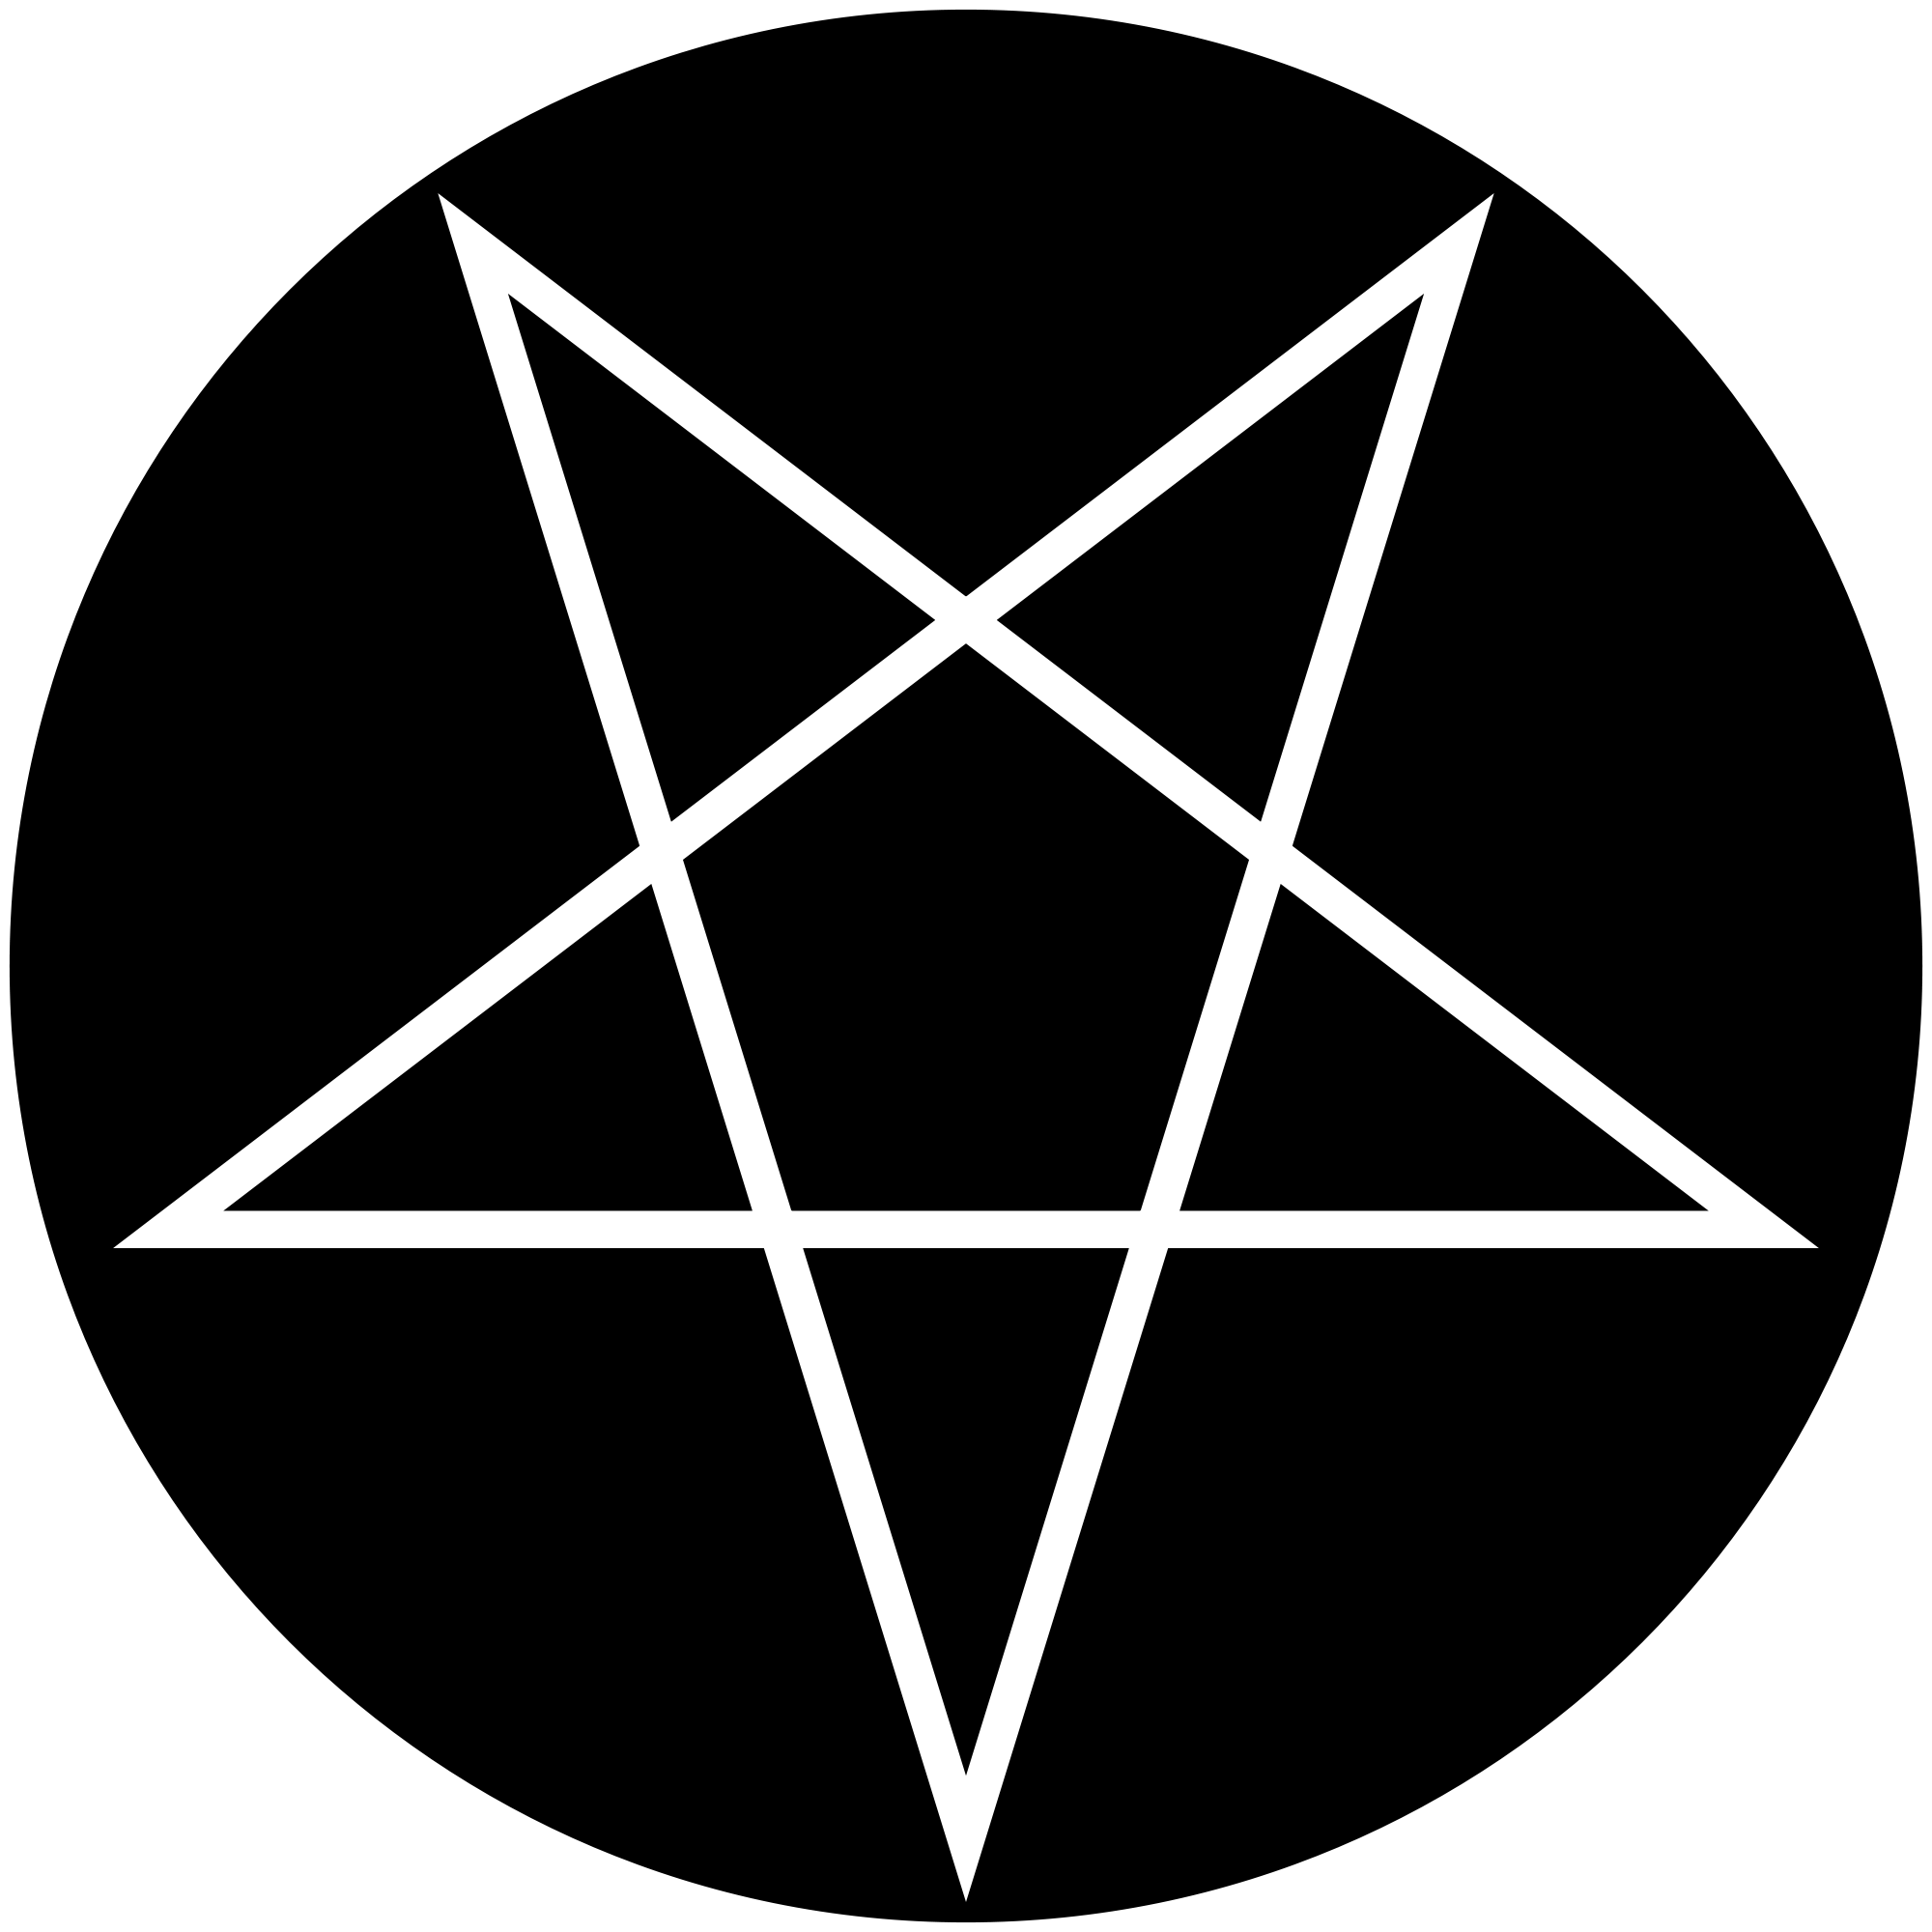 Pentagram png. File inverted wikimedia commons